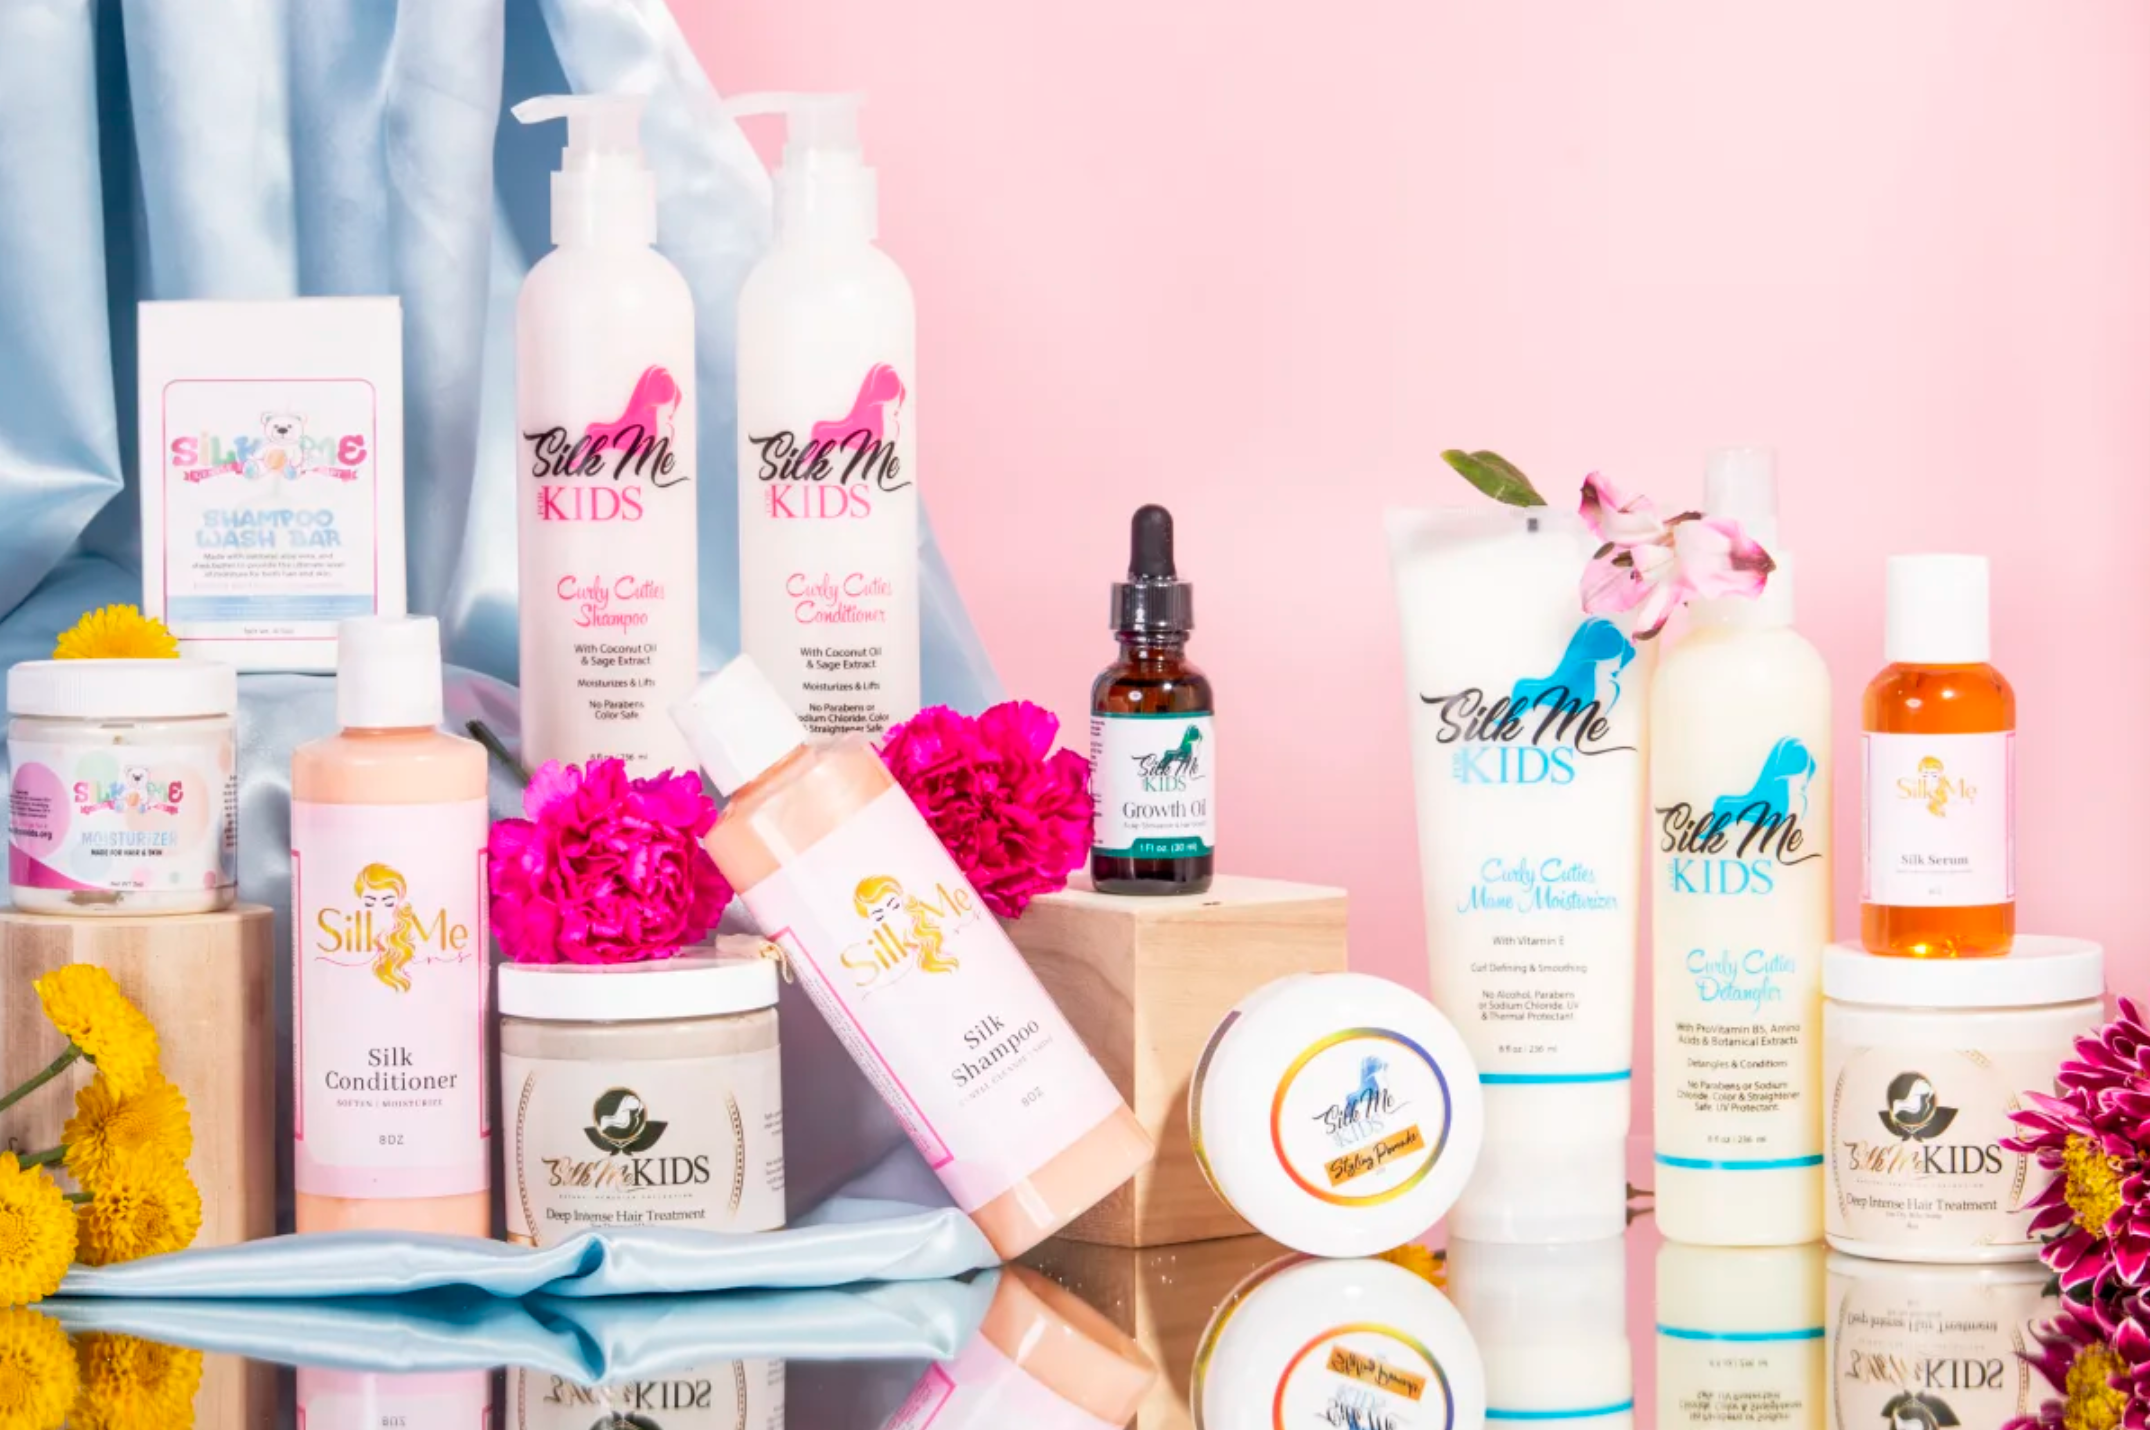 Fascinating New Orleans kids brand hooks parents with amazing kids hair care products